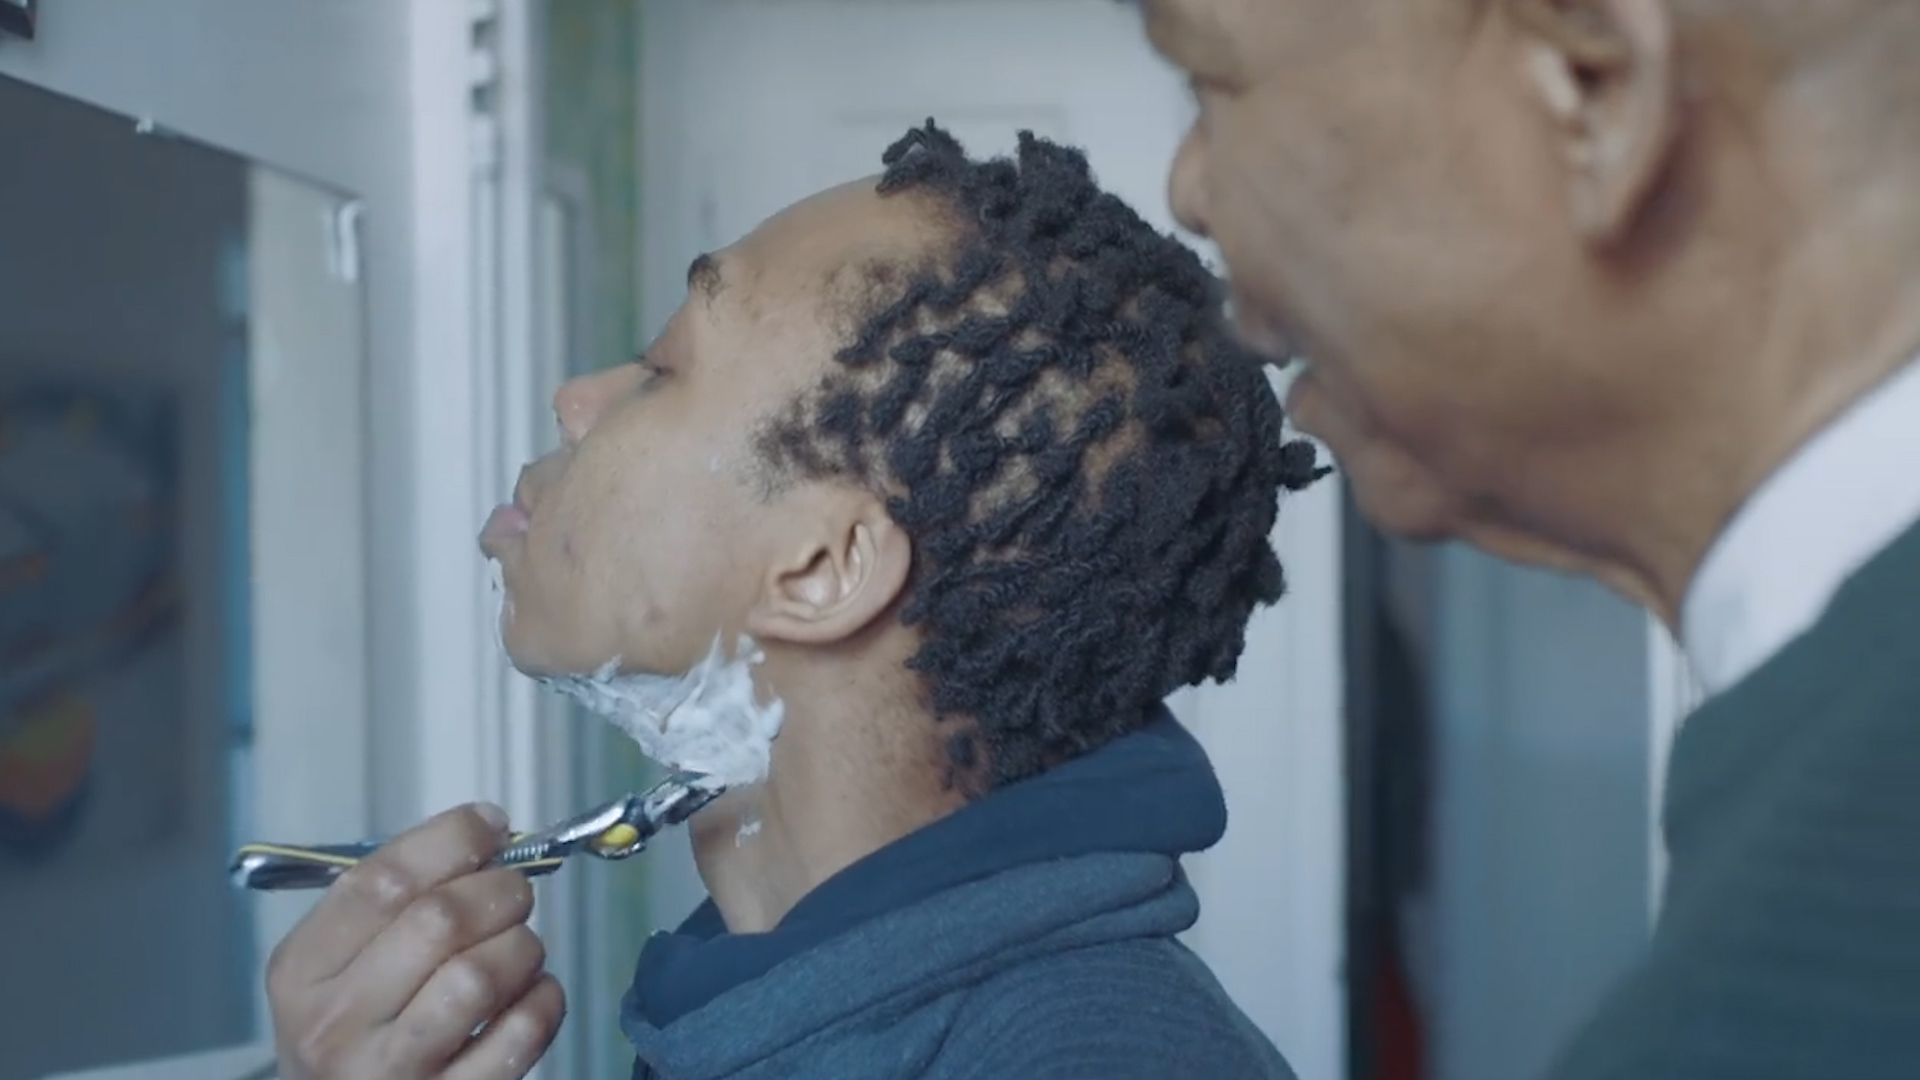 Gillette ad: 'First Shave, the story of Samson'